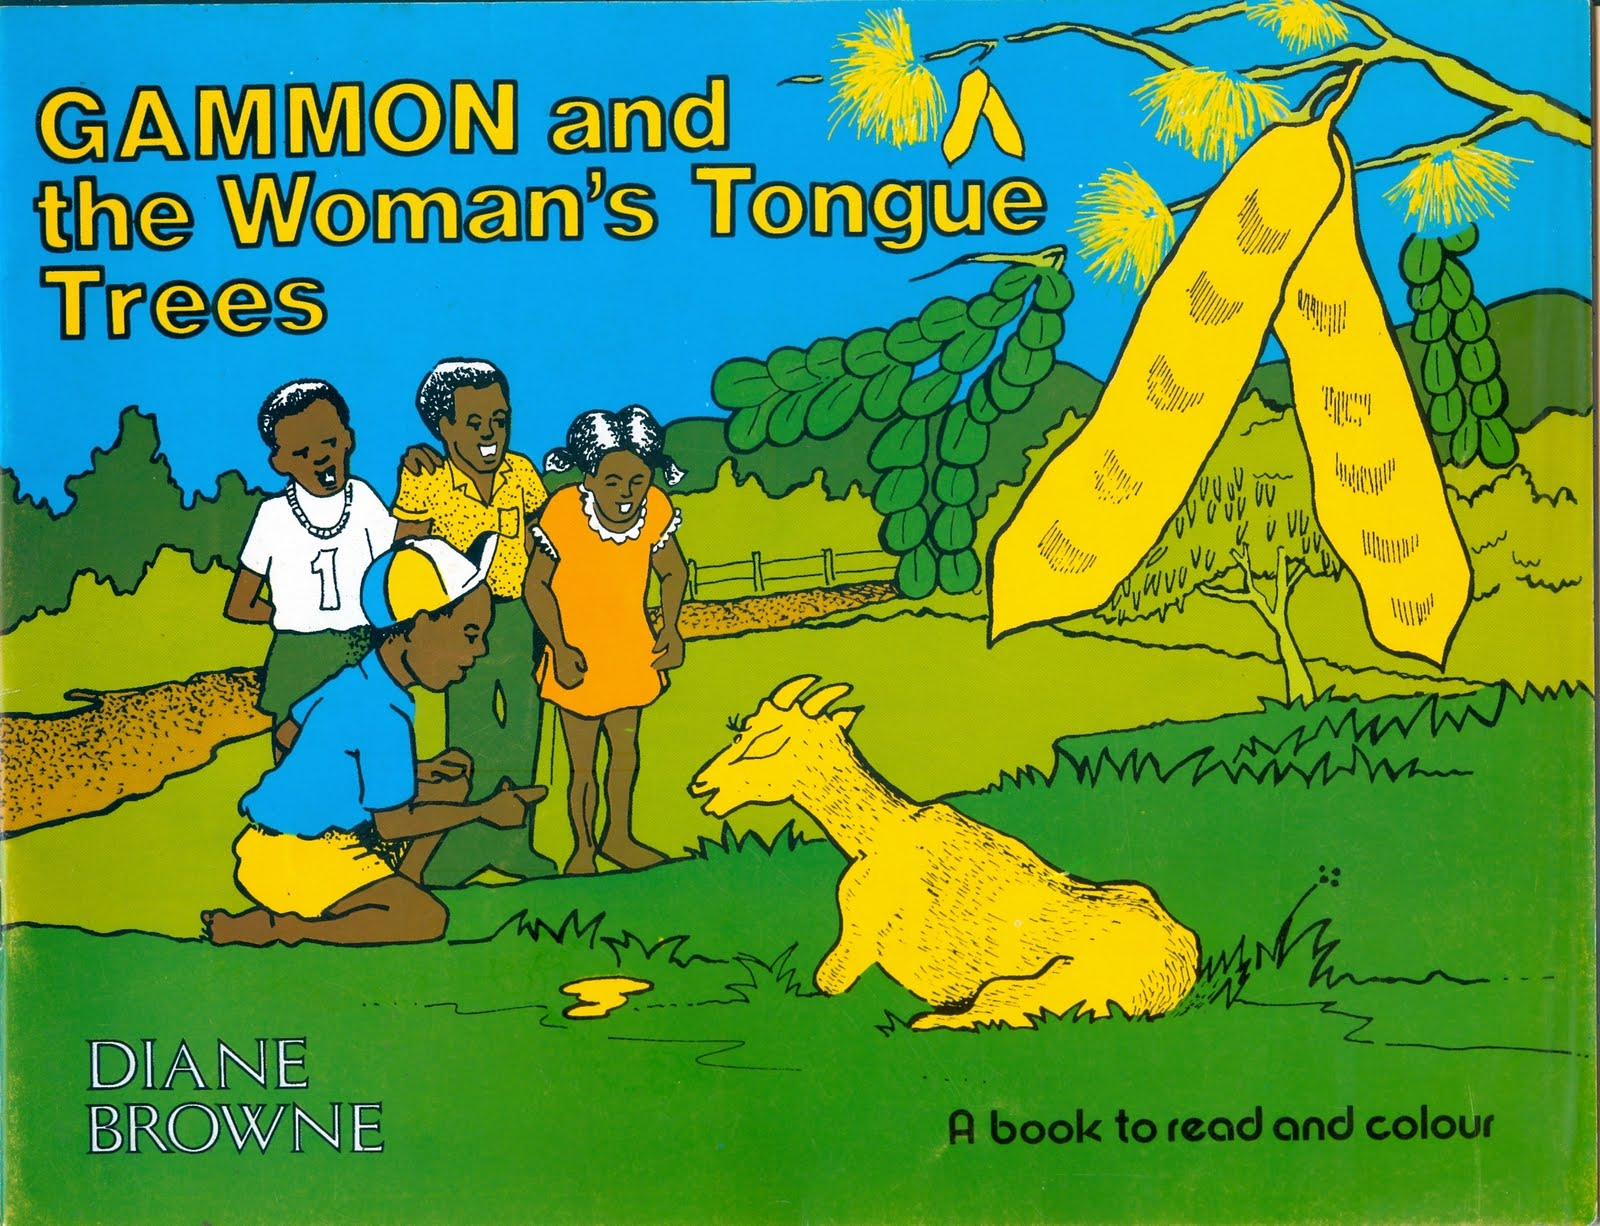 Colour childrens literature - And Yes This Does Lead Back Through The Highways And The Byways Of Thought To Children S Literature My Book Gammon And The Woman S Tongue Trees